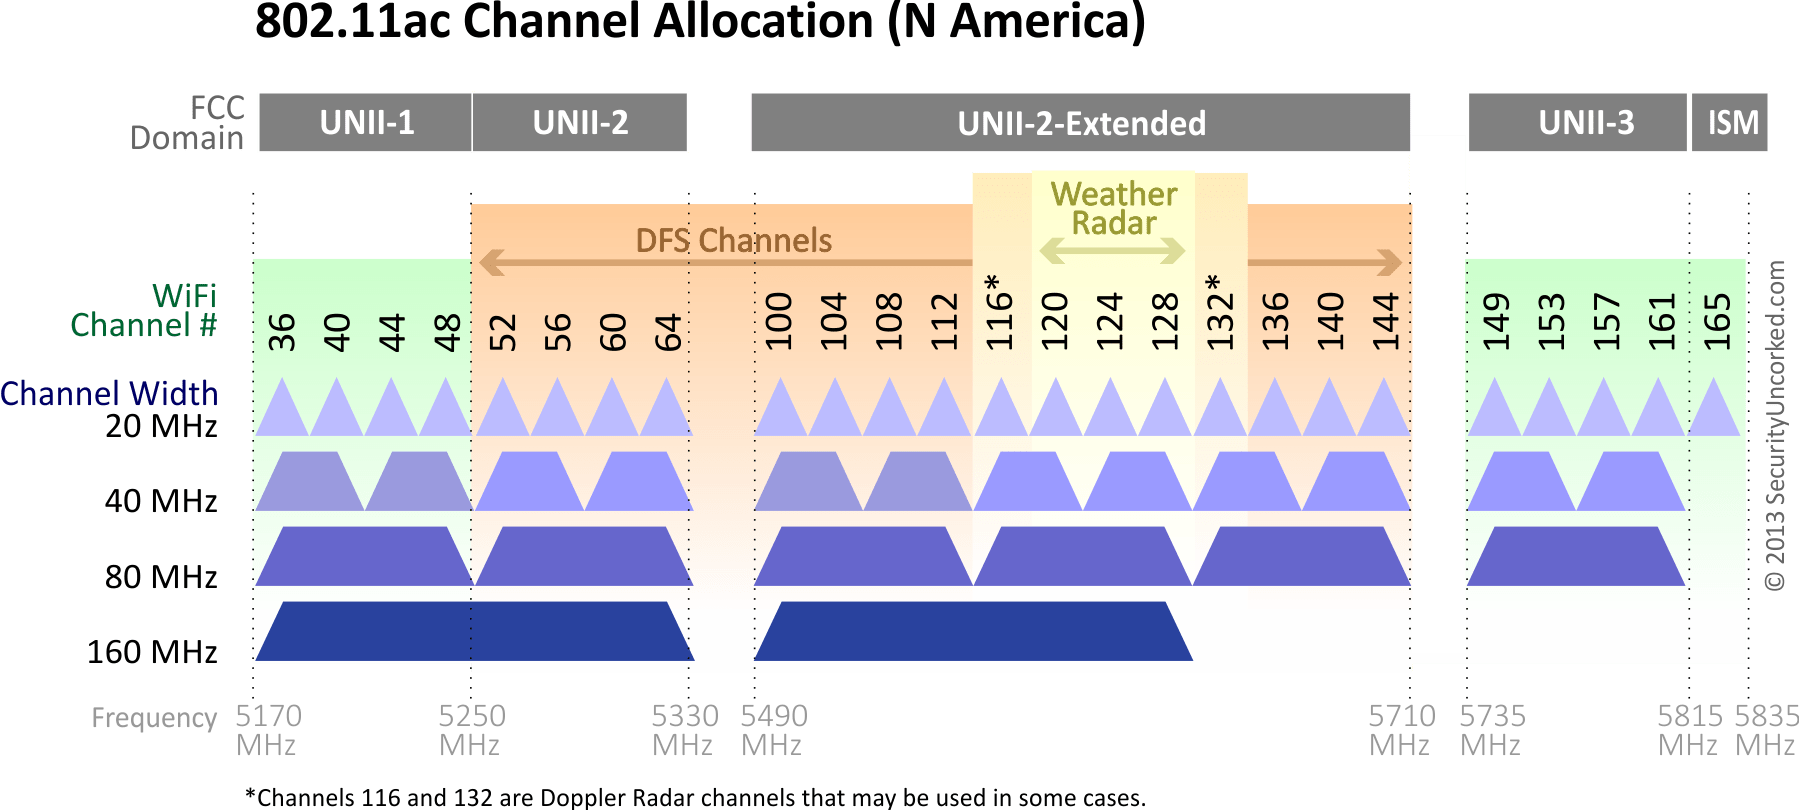 Image source: http://securityuncorked.com/2013/11/the-best-damn-802-11ac-channel-allocation-graphics/